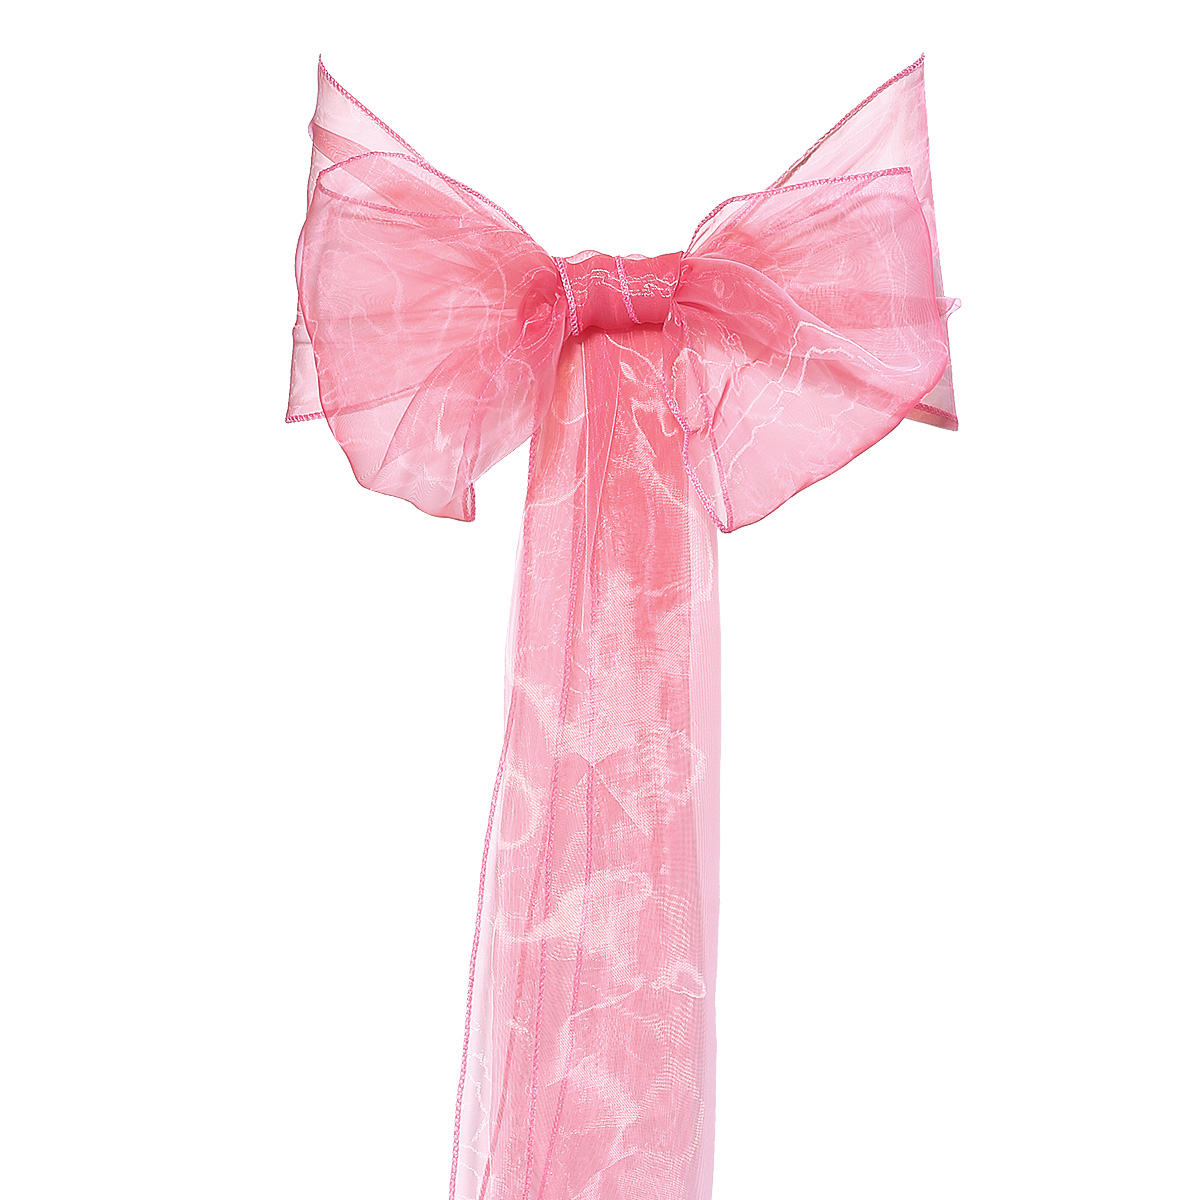 10x Organza for Wedding Table Runner, Chair Sash, Bow, decoration Coral : eBay